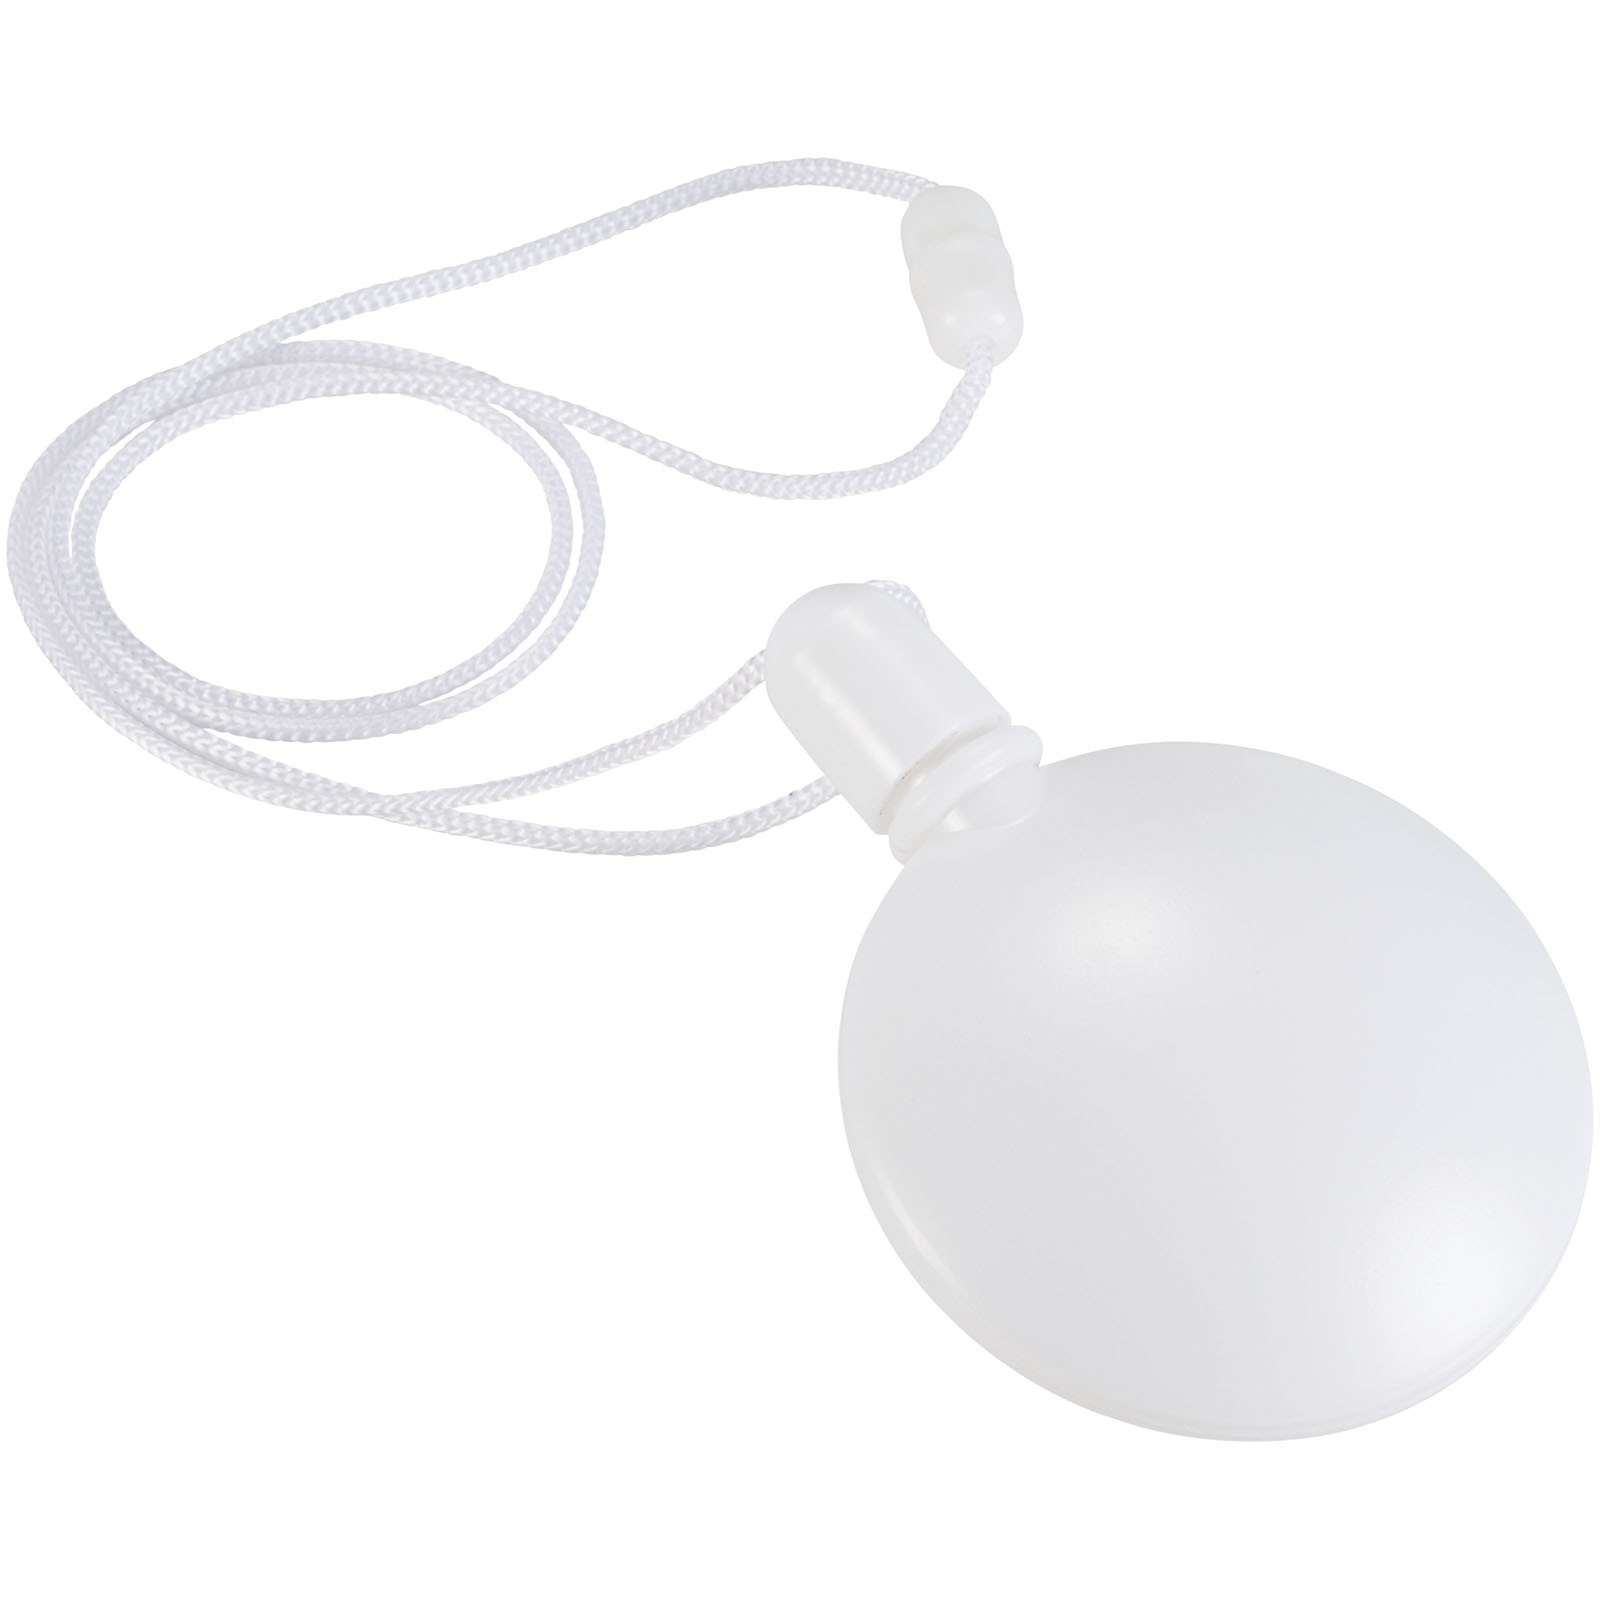 Blubber round bubble dispenser - White